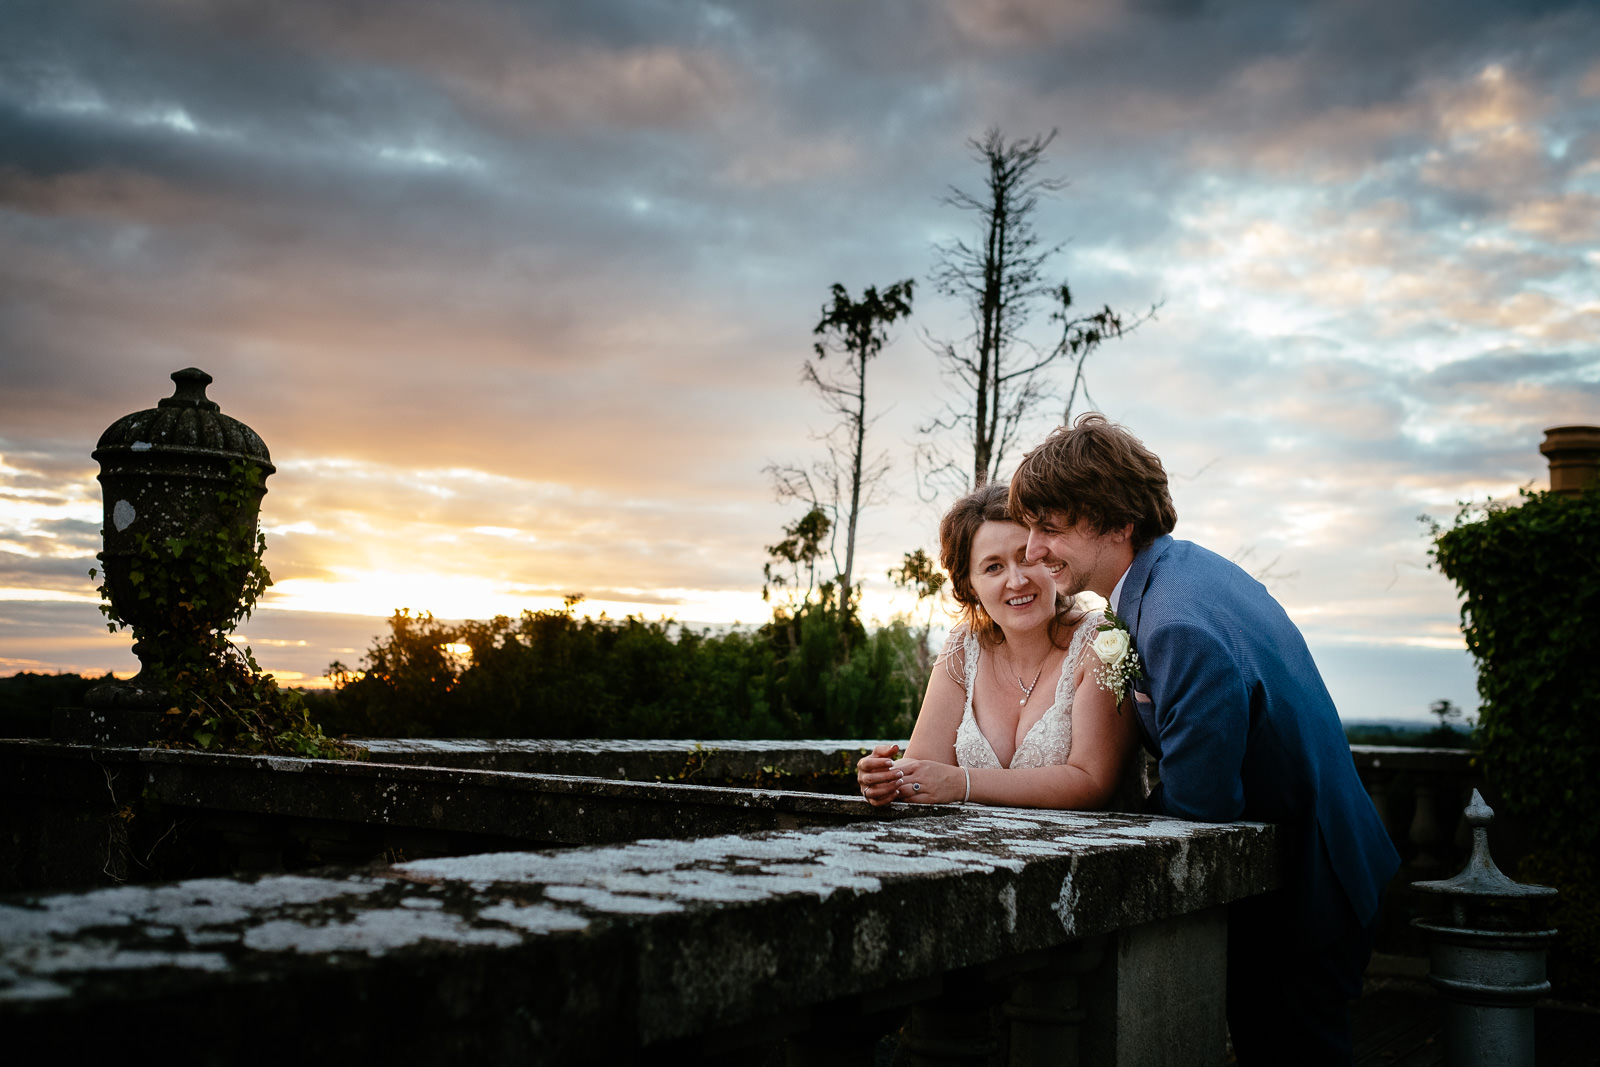 palmerstown estate wedding photographer kildare 1206